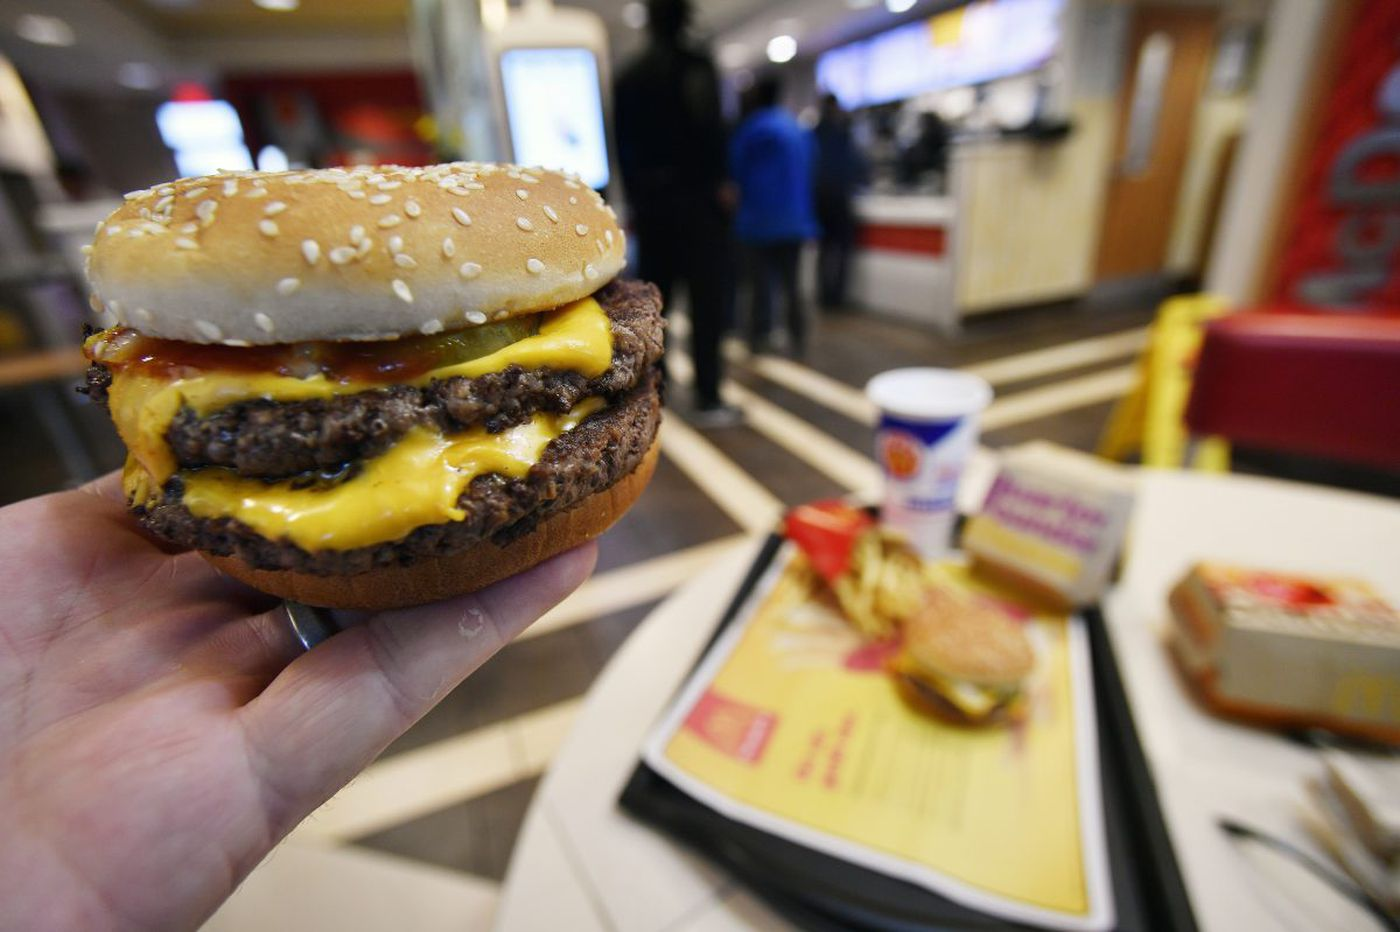 McDonald's to roll out fresh beef burgers nationwide this spring